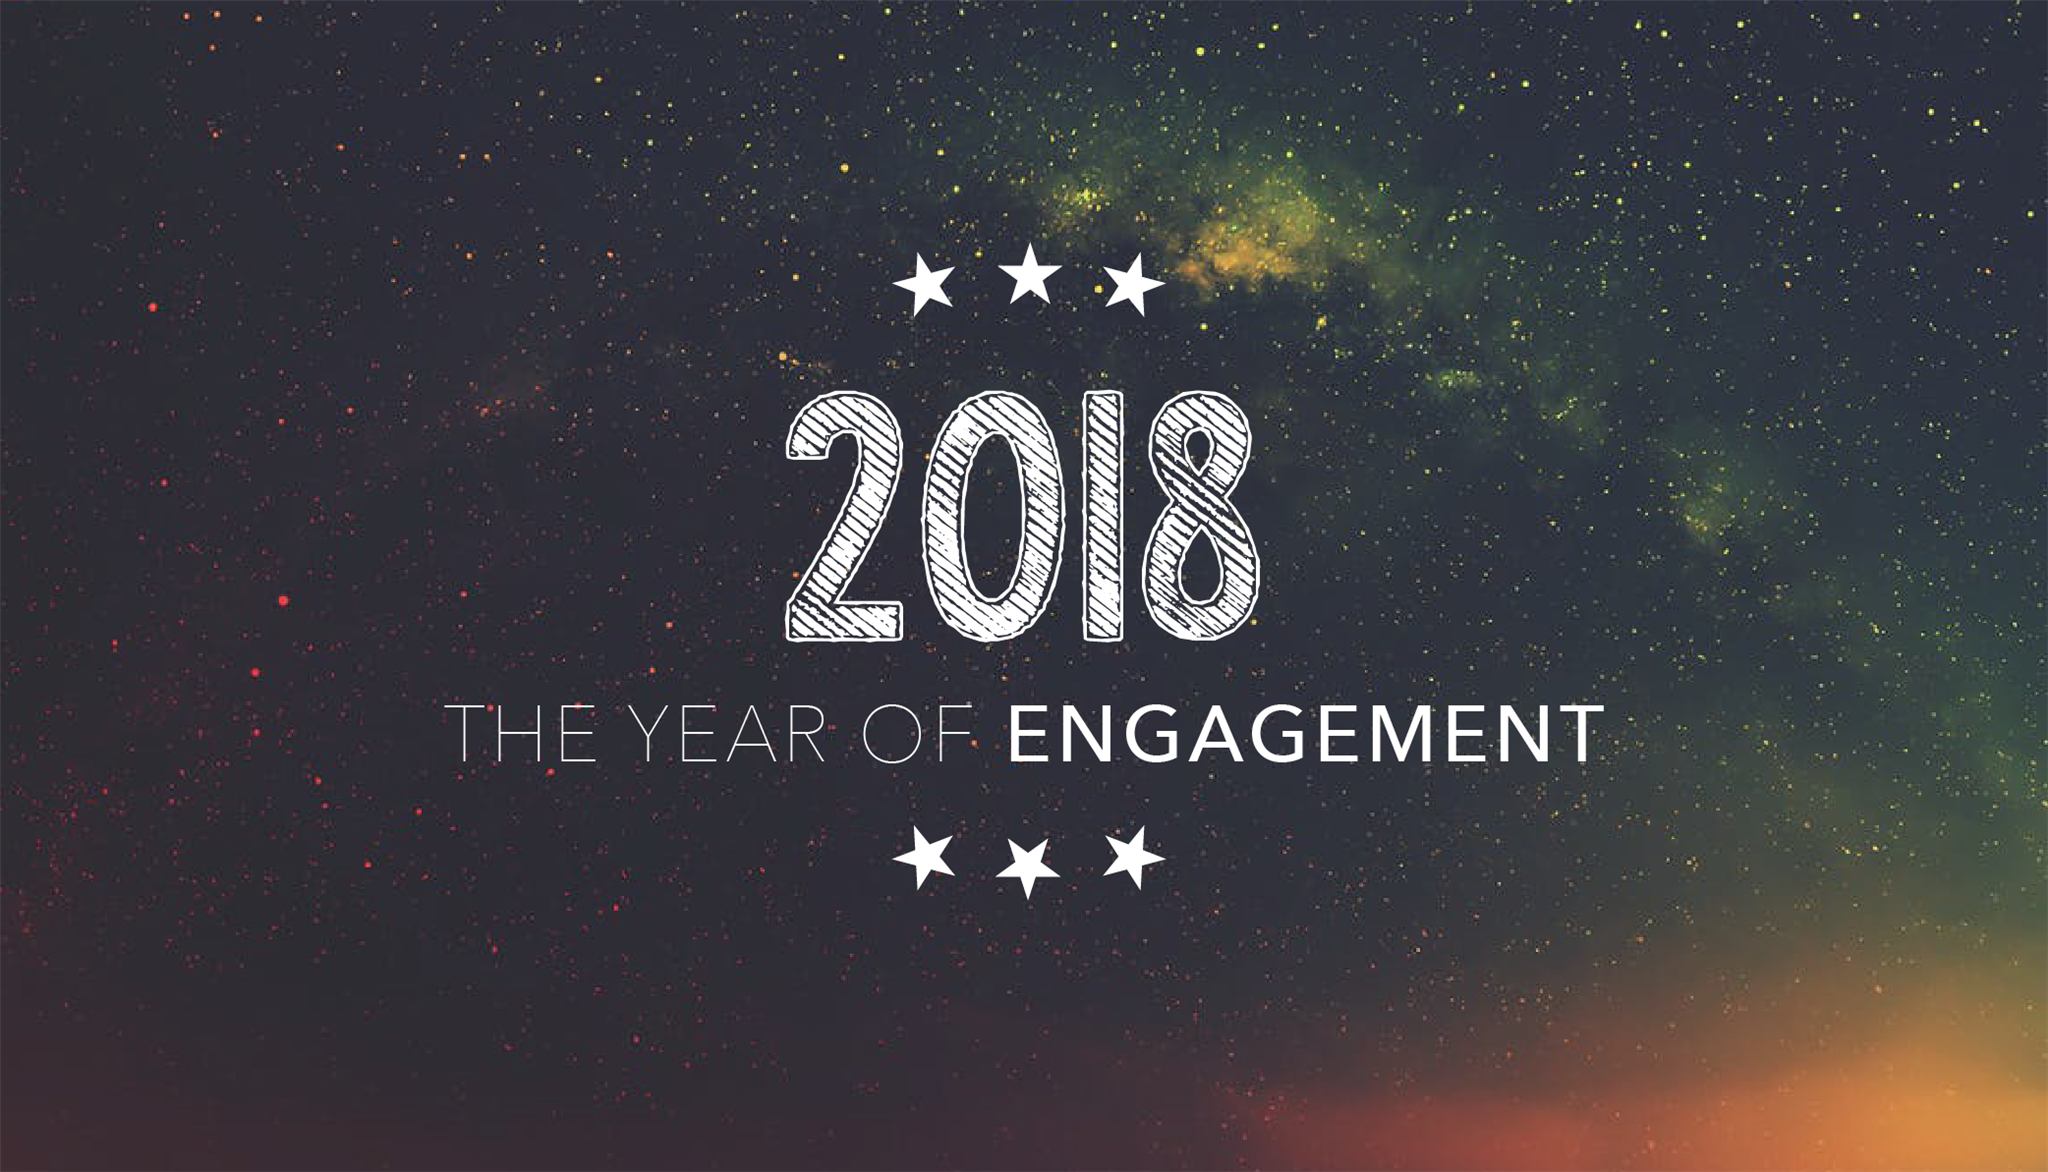 2018 - The Year of Engagement